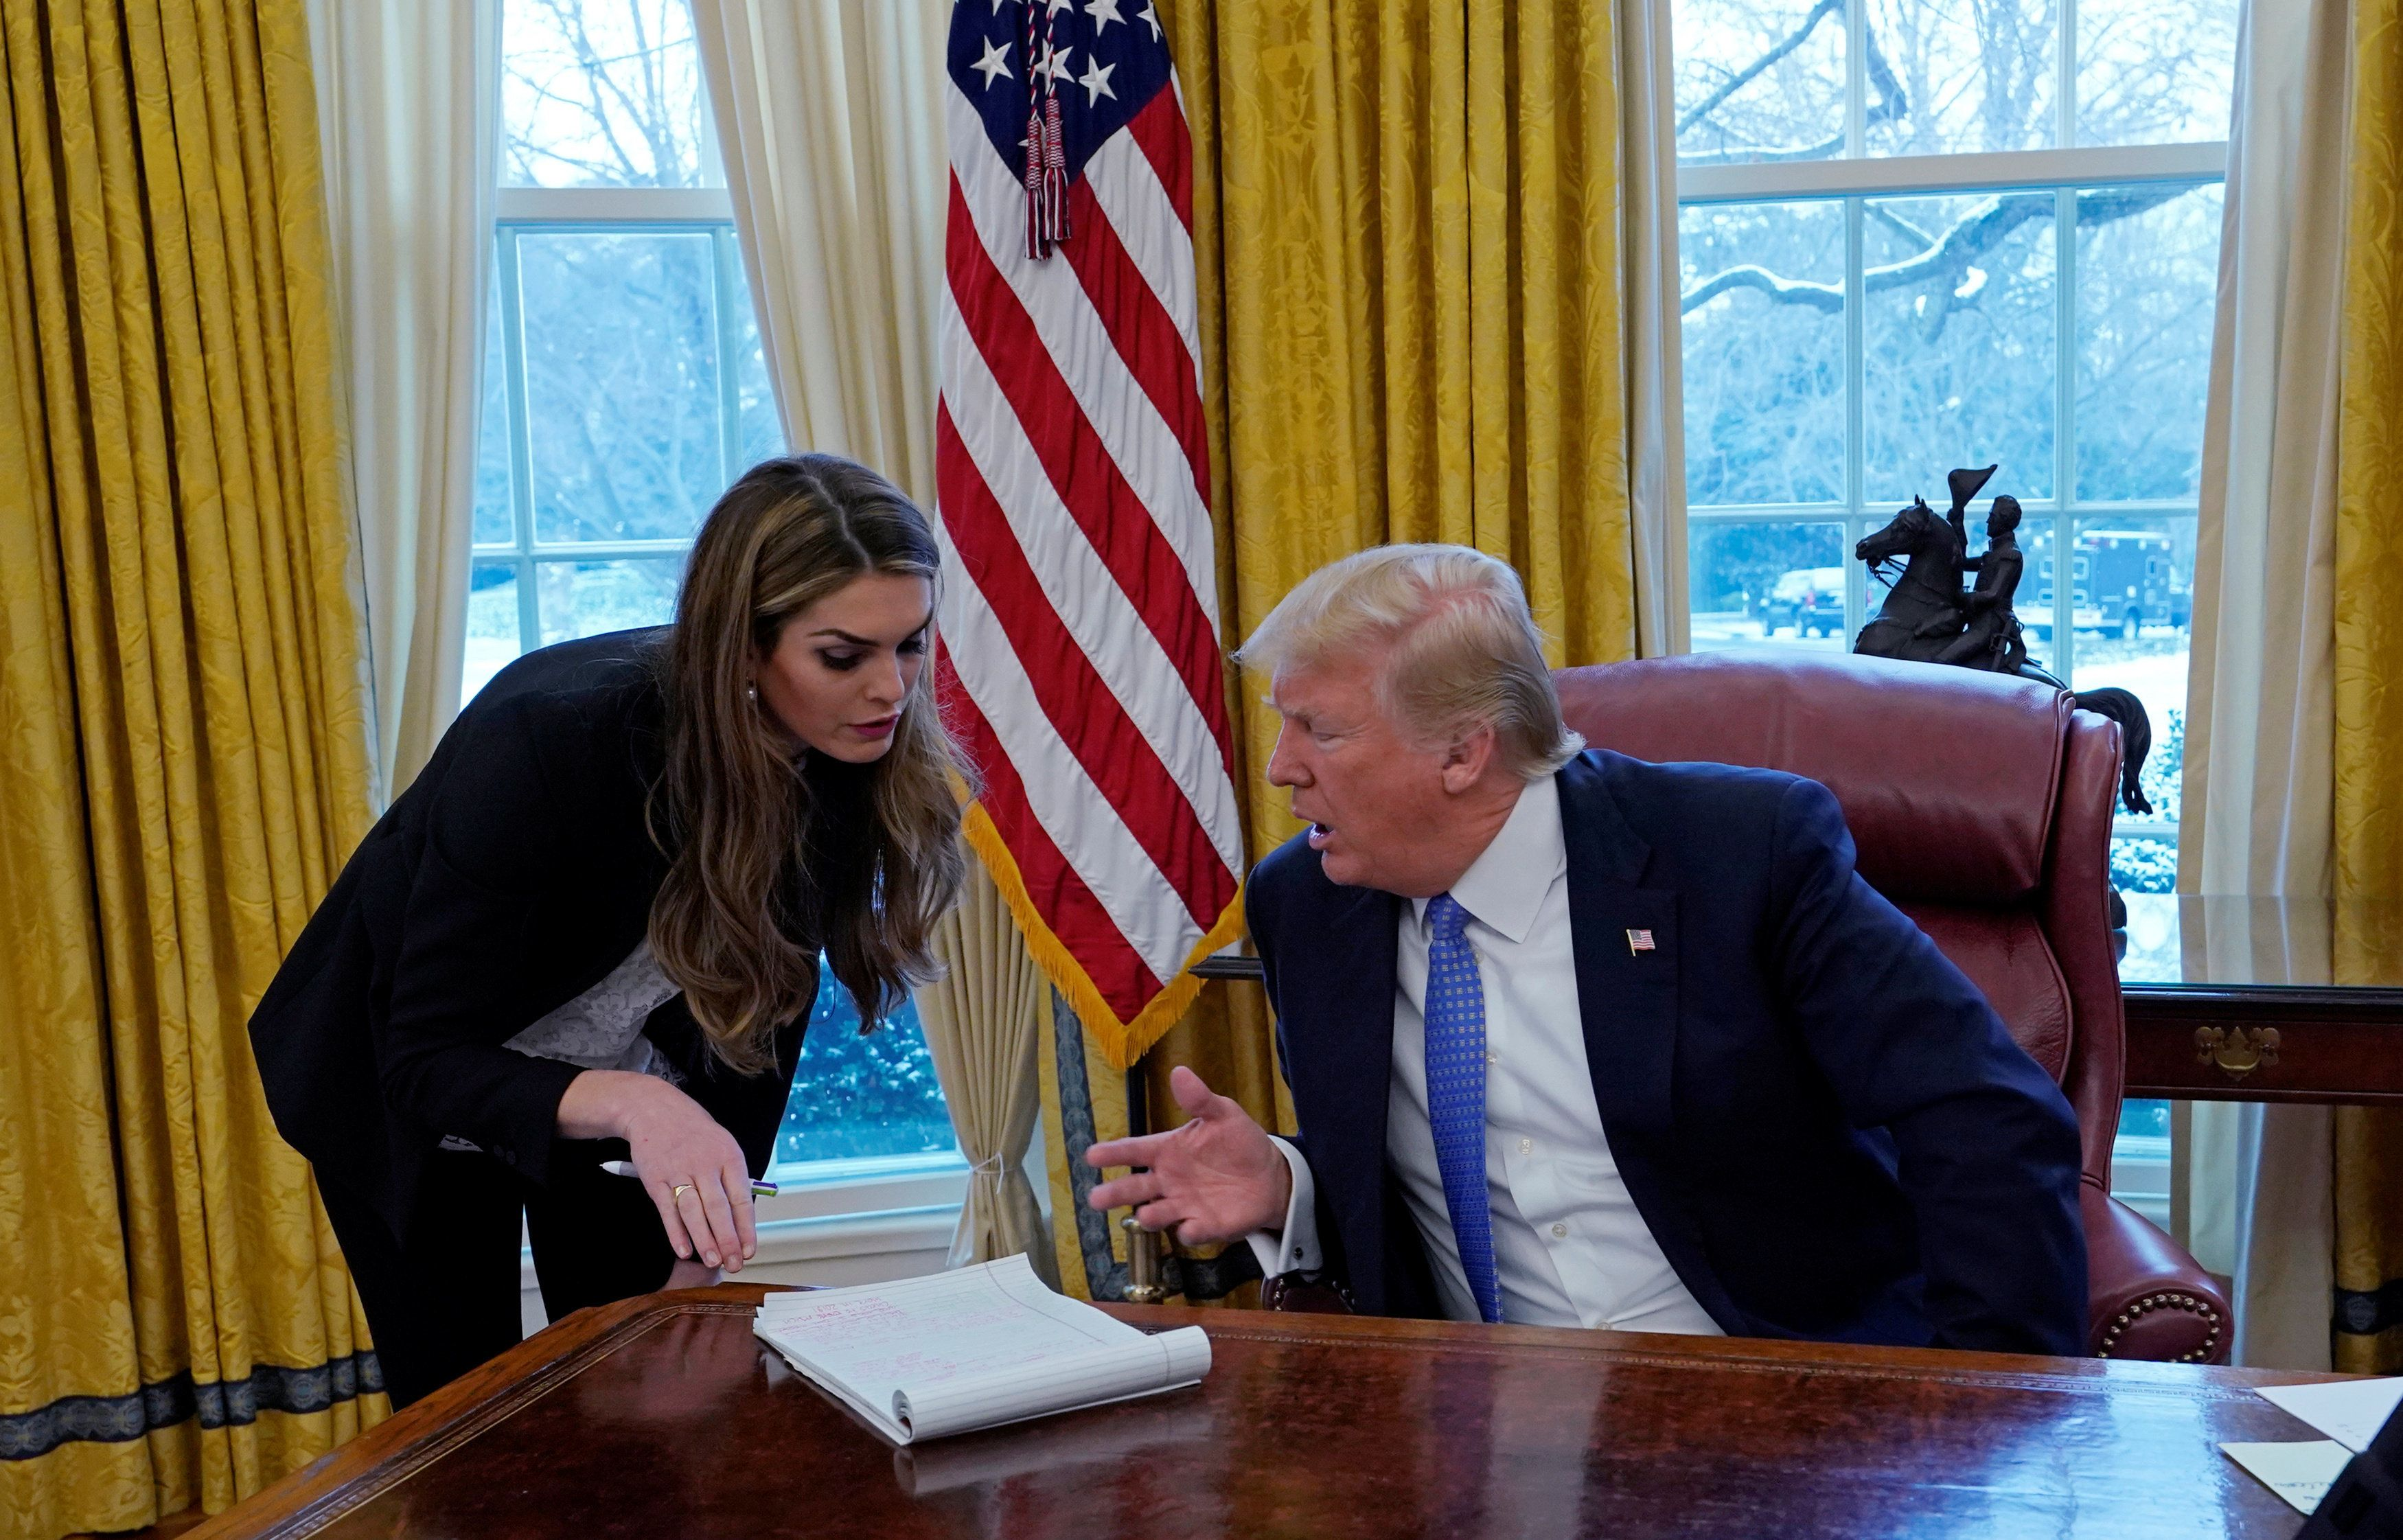 U.S. President Donald Trump confers with White House Communications Director Hope Hicks during an interview with Reuters at the White House in Washington, U.S., January 17, 2018. REUTERS/Kevin Lamarque